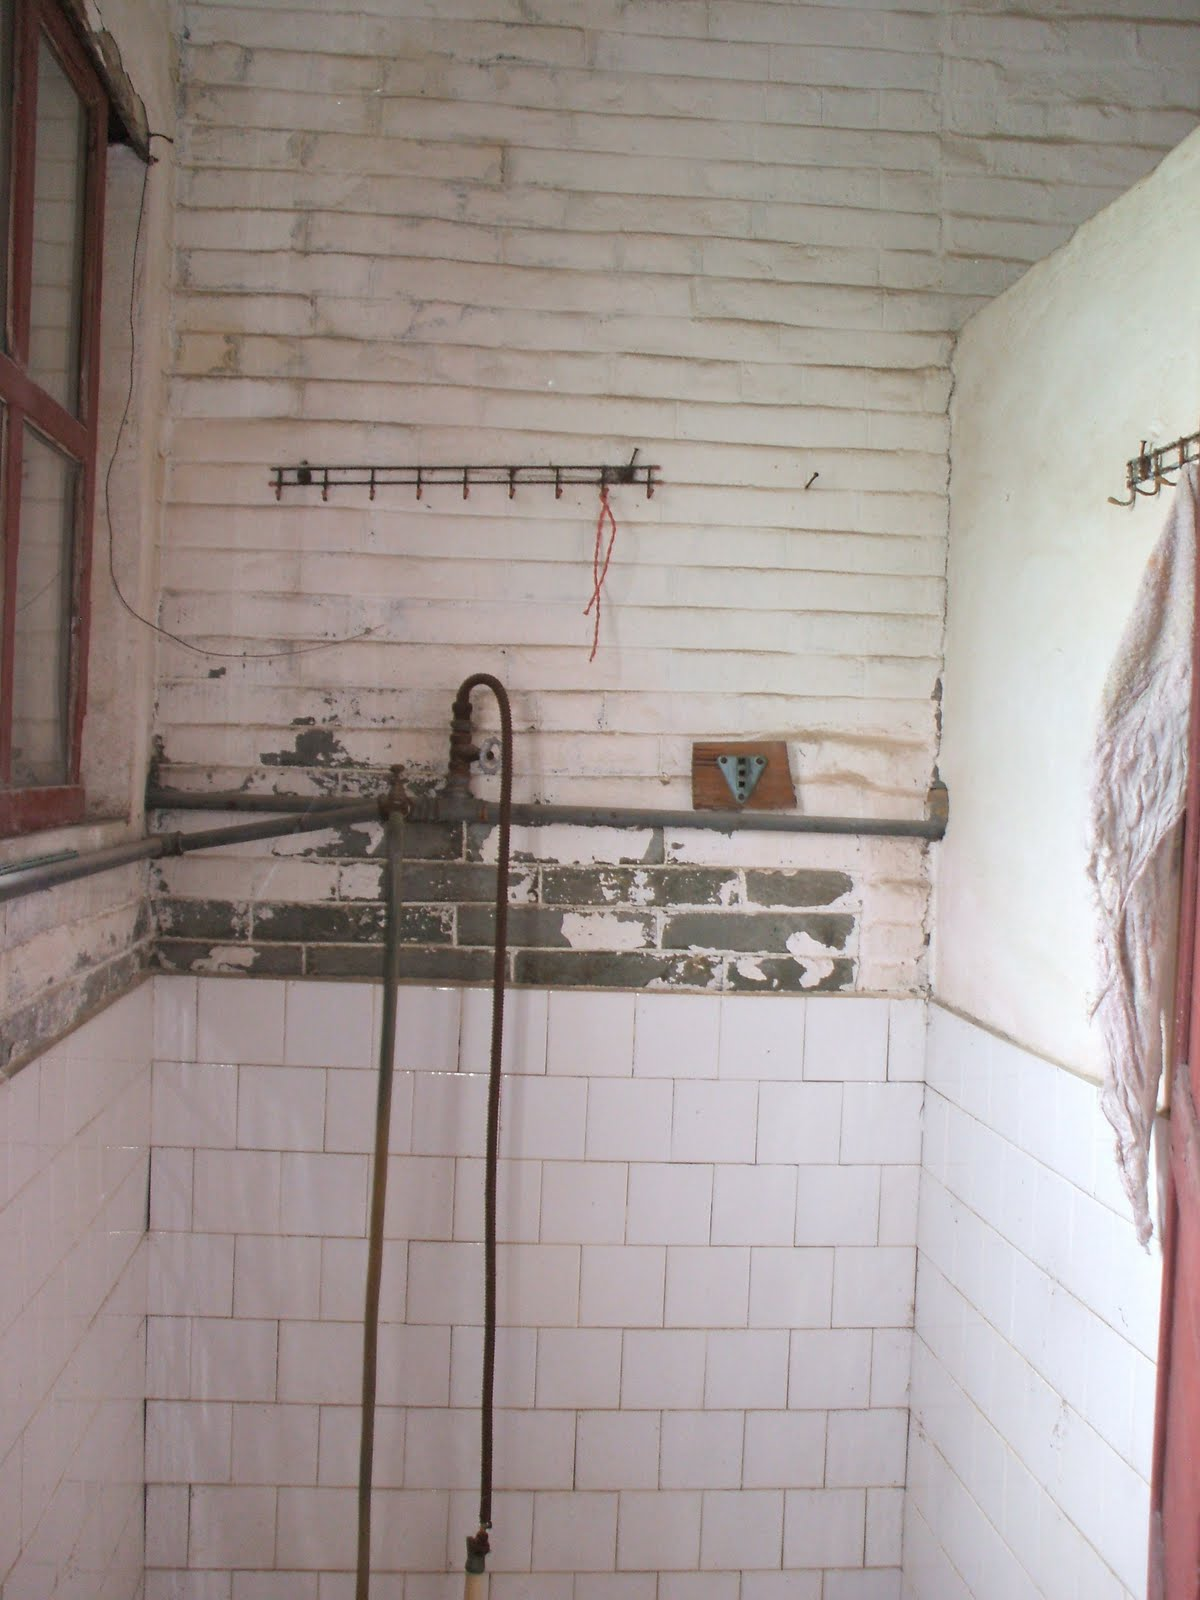 Instructional Design Taishan Part 9 The Yau House Water Storage Electrical Wiring Behind Shower Wall This Is Area Of Stove I Believe It A Shed And Sink Looks Like